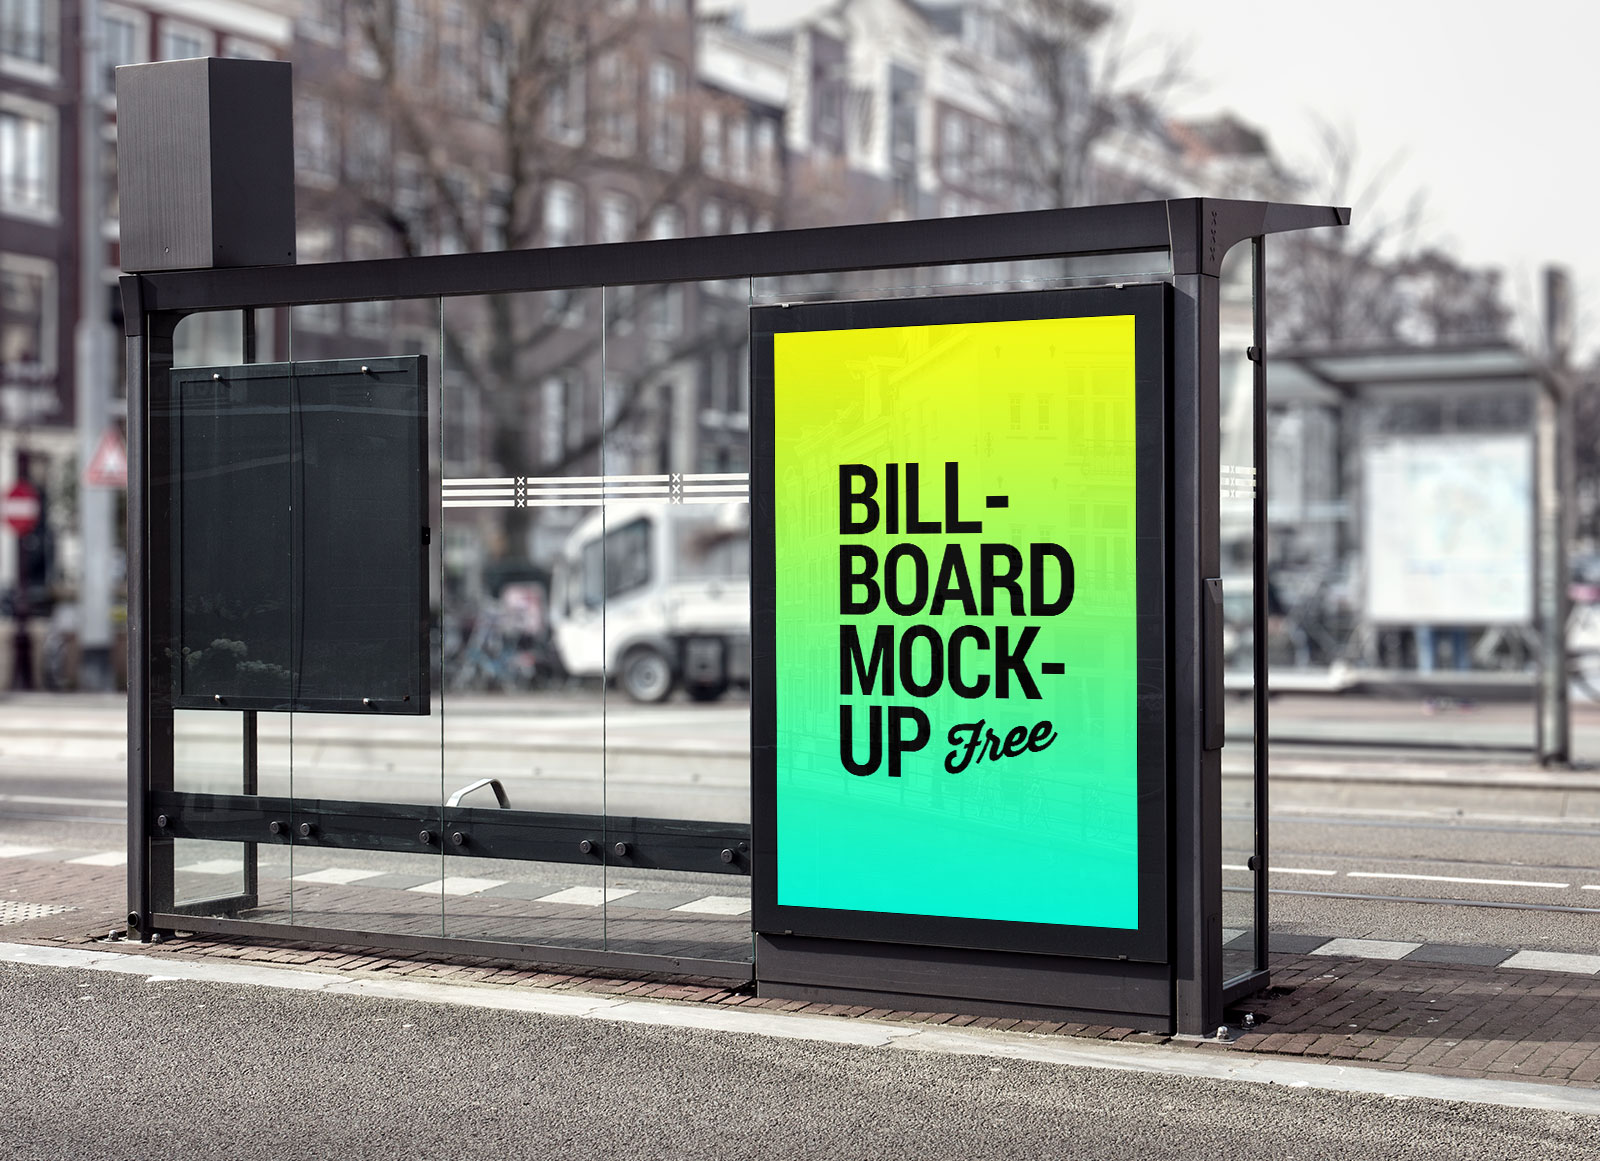 Free Bus Shelter Roadside Billboard Mockup PSD File